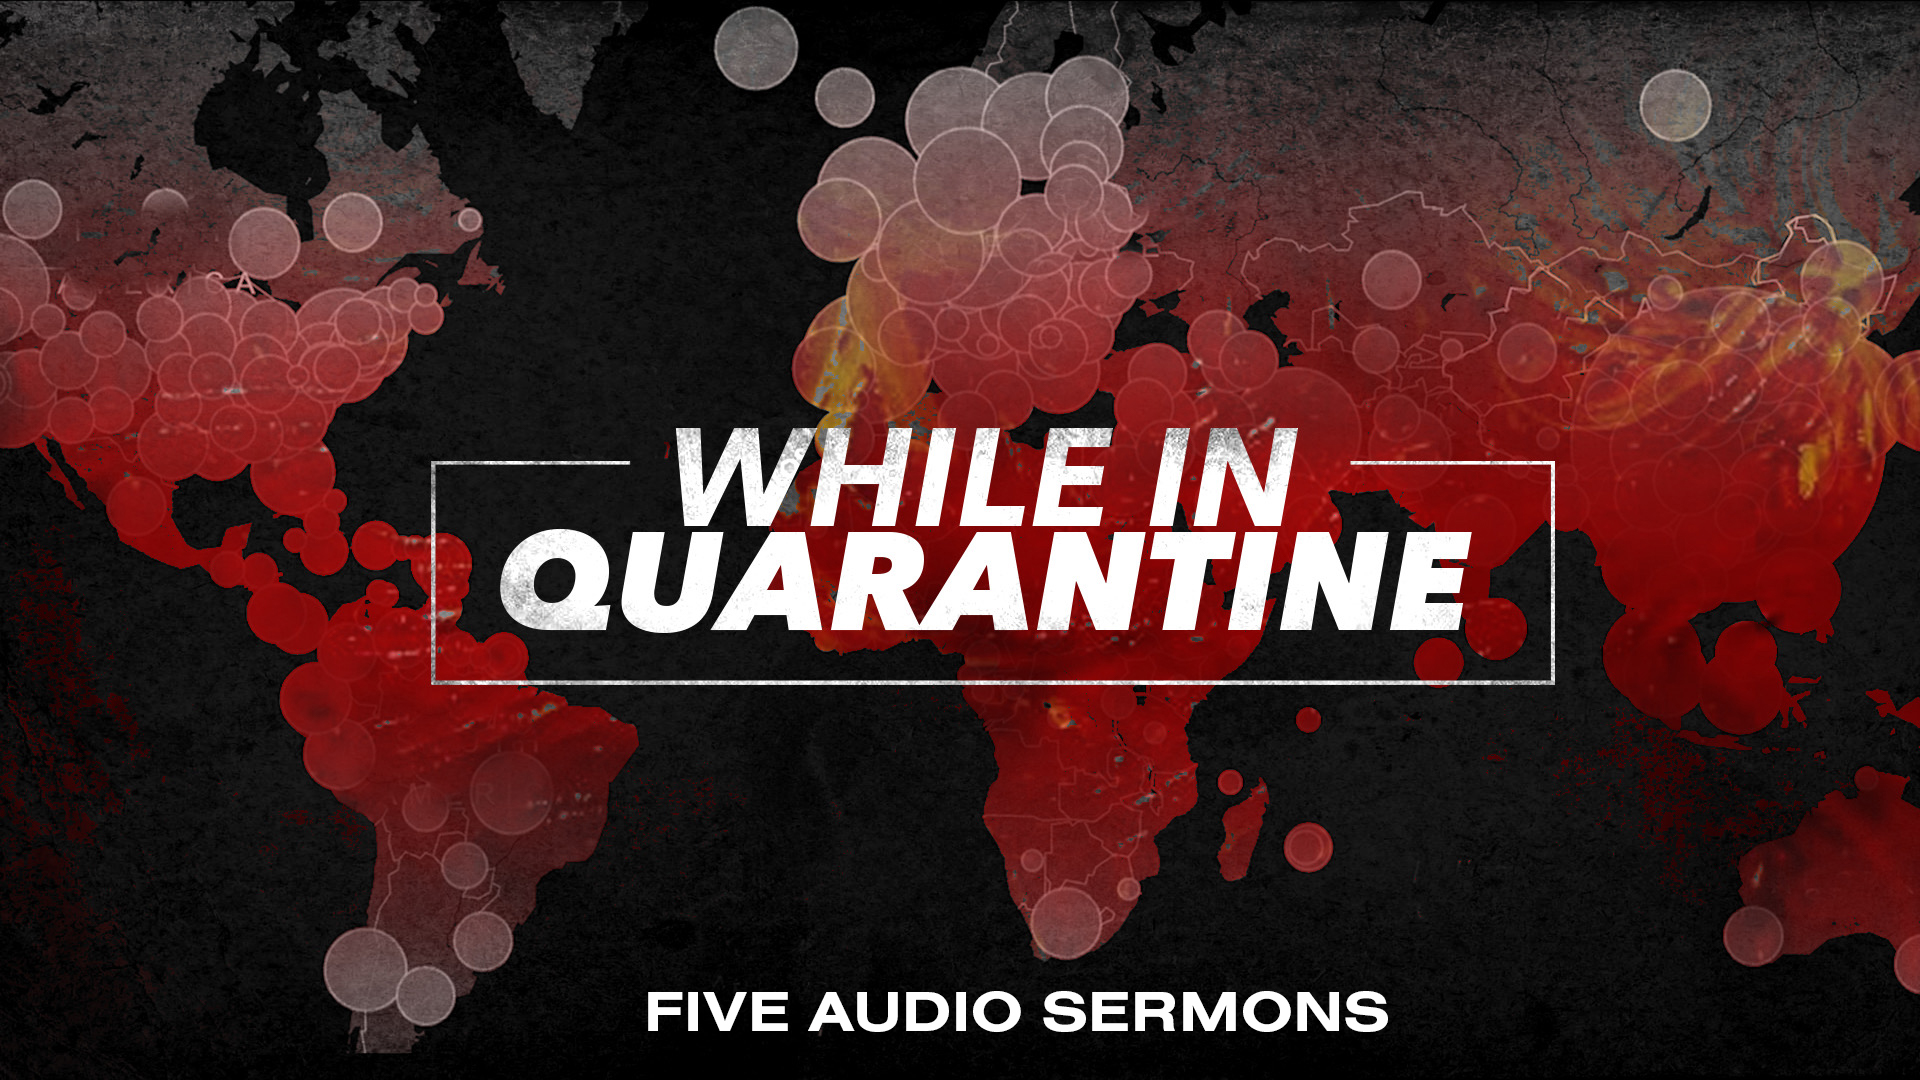 https://vladimirsavchuk.com/resources/while-in-quarantine-audio-series/